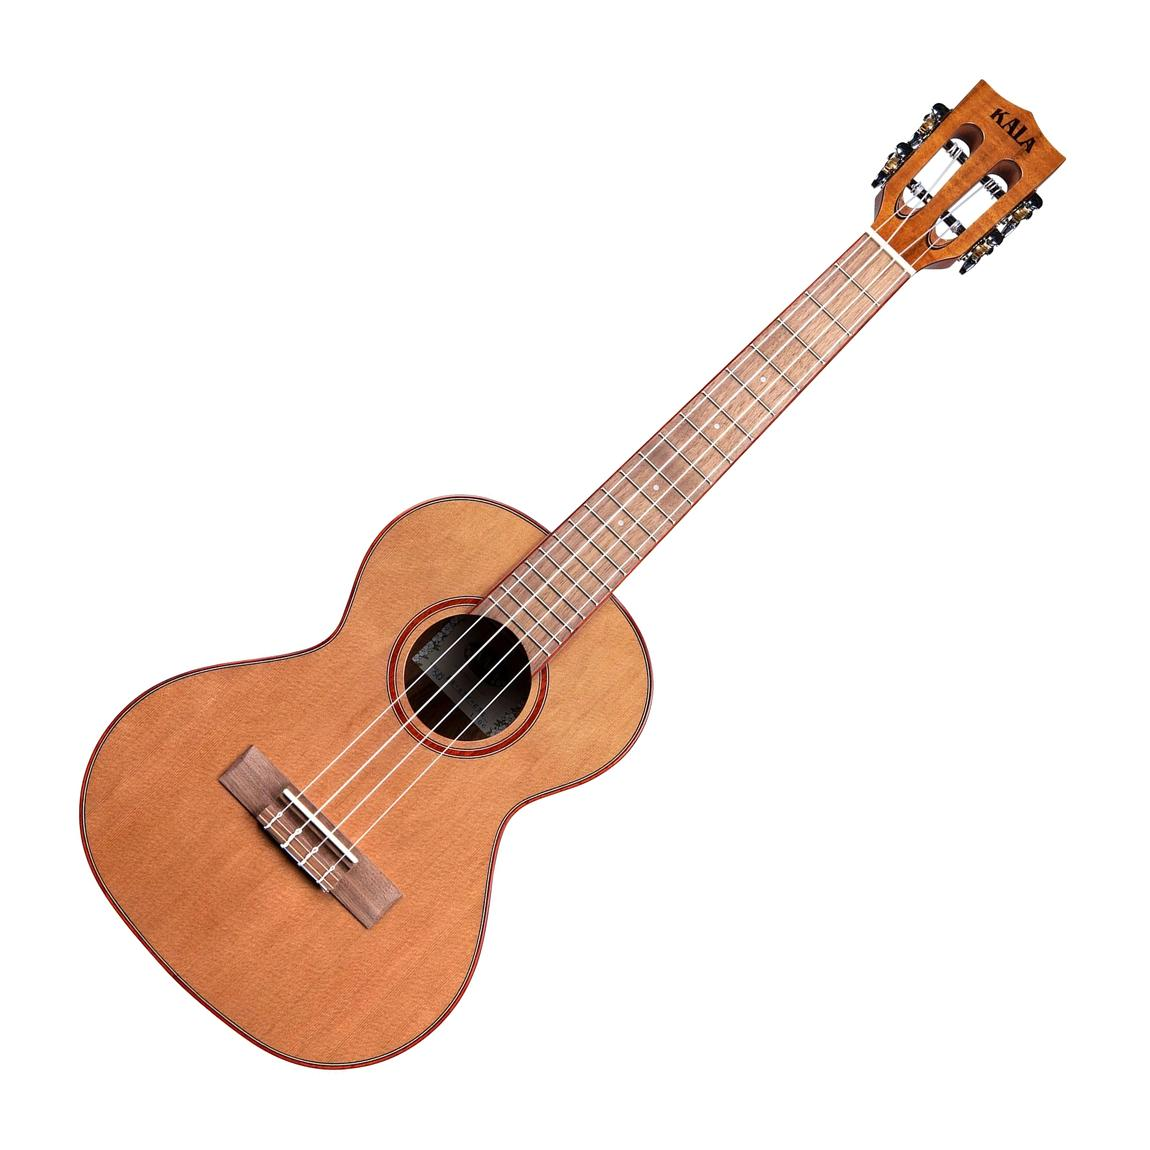 Kala KA-ATP-CTG Acacia Cedar Top Tenor Ukulele, Natural Gloss Finish